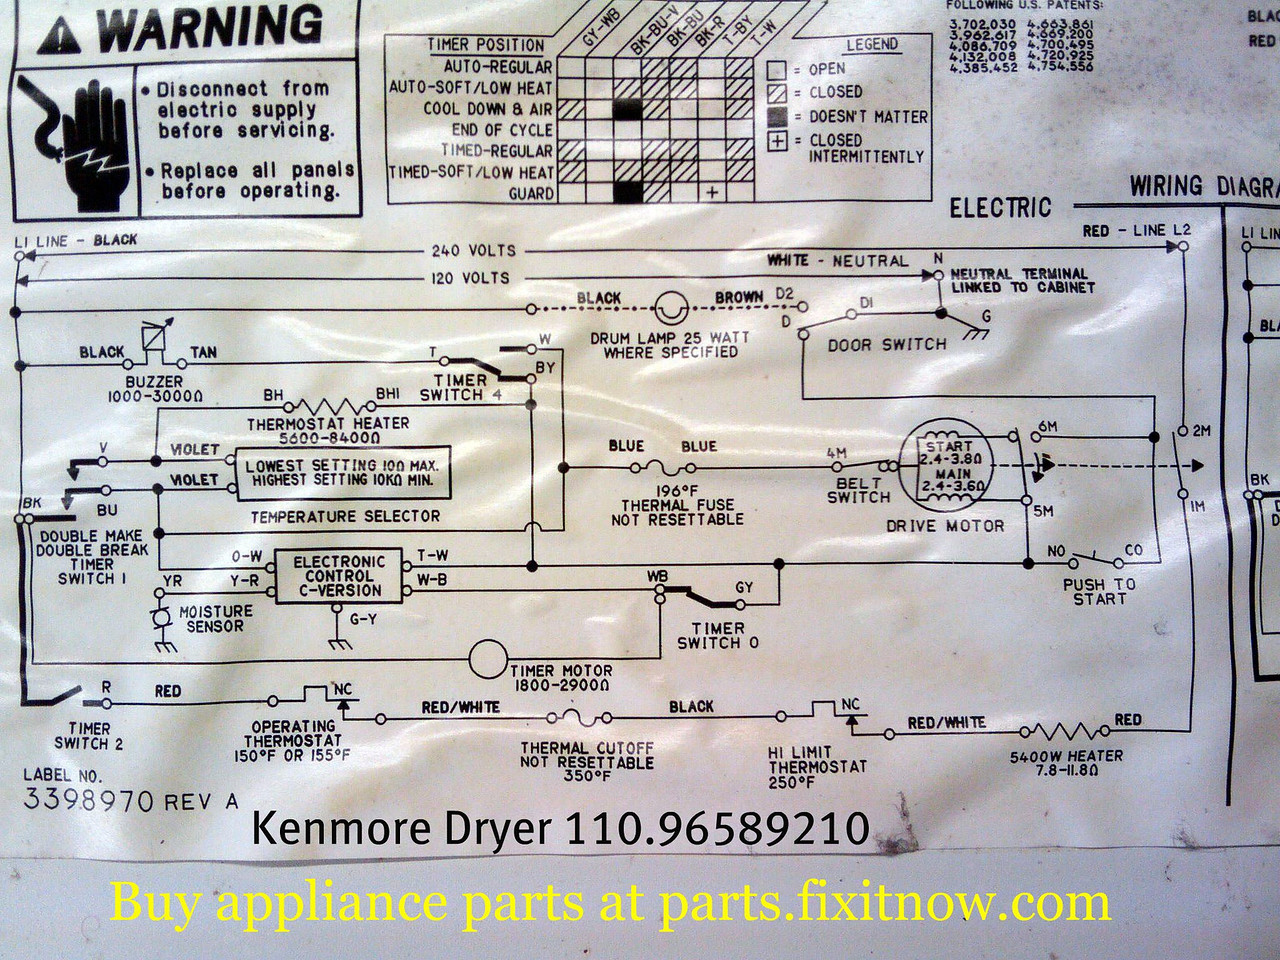 Wiring diagrams and schematics appliantology kenmore dryer 11096589210 schematic cheapraybanclubmaster Gallery